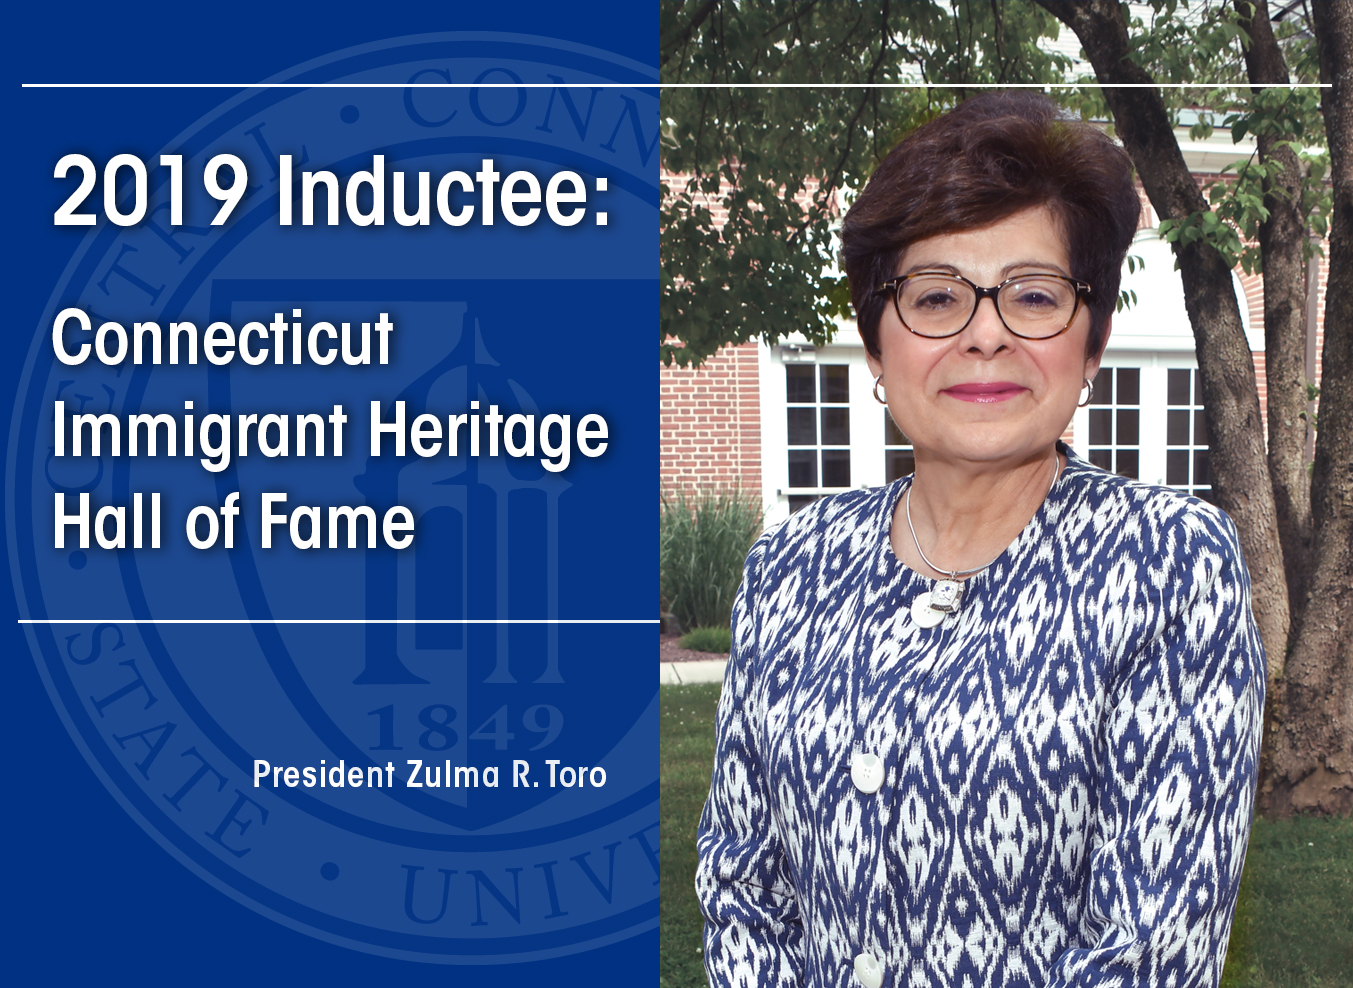 Dr. Toro to be inducted into Connecticut Immigrant Heritage Hall of Fame